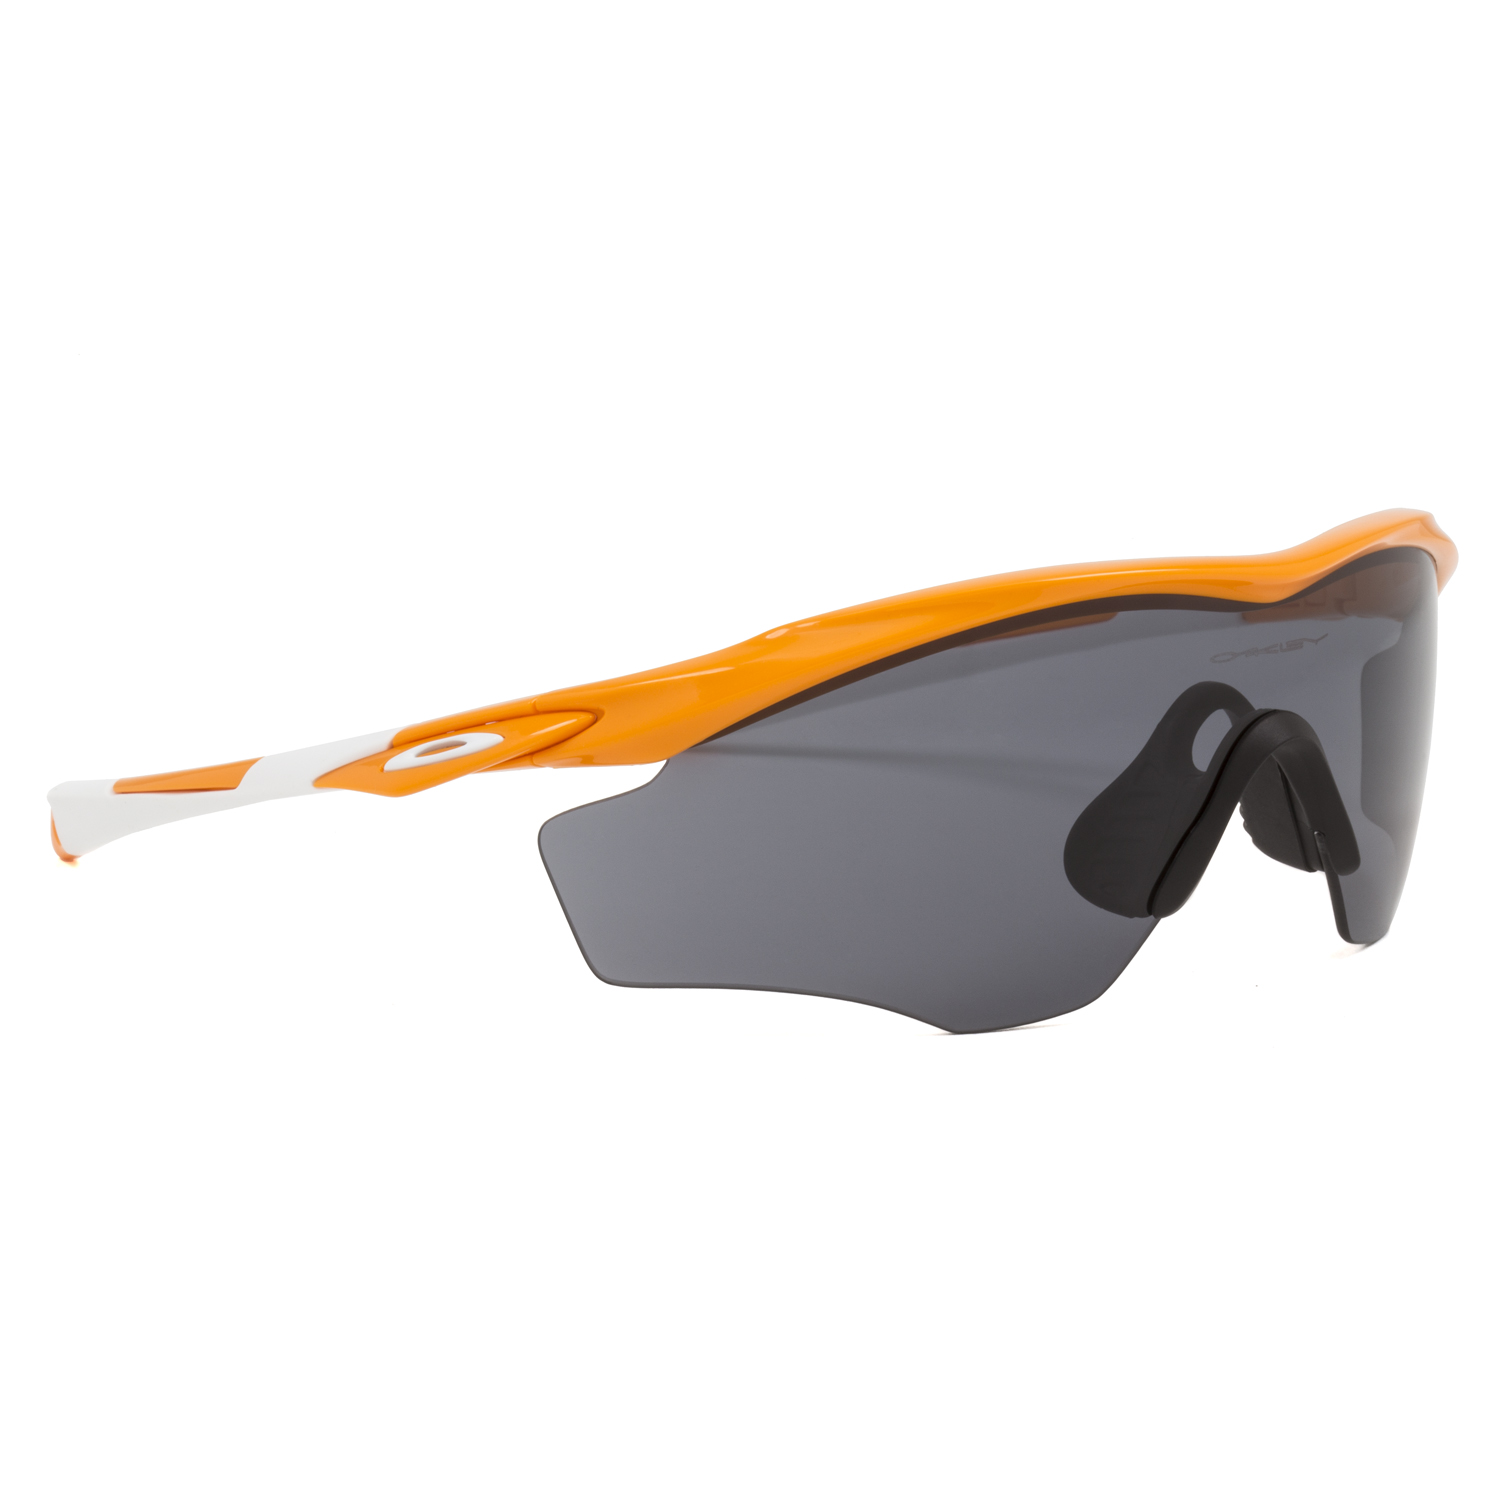 78814b58950 Oakley M2 Xl Sunglasses